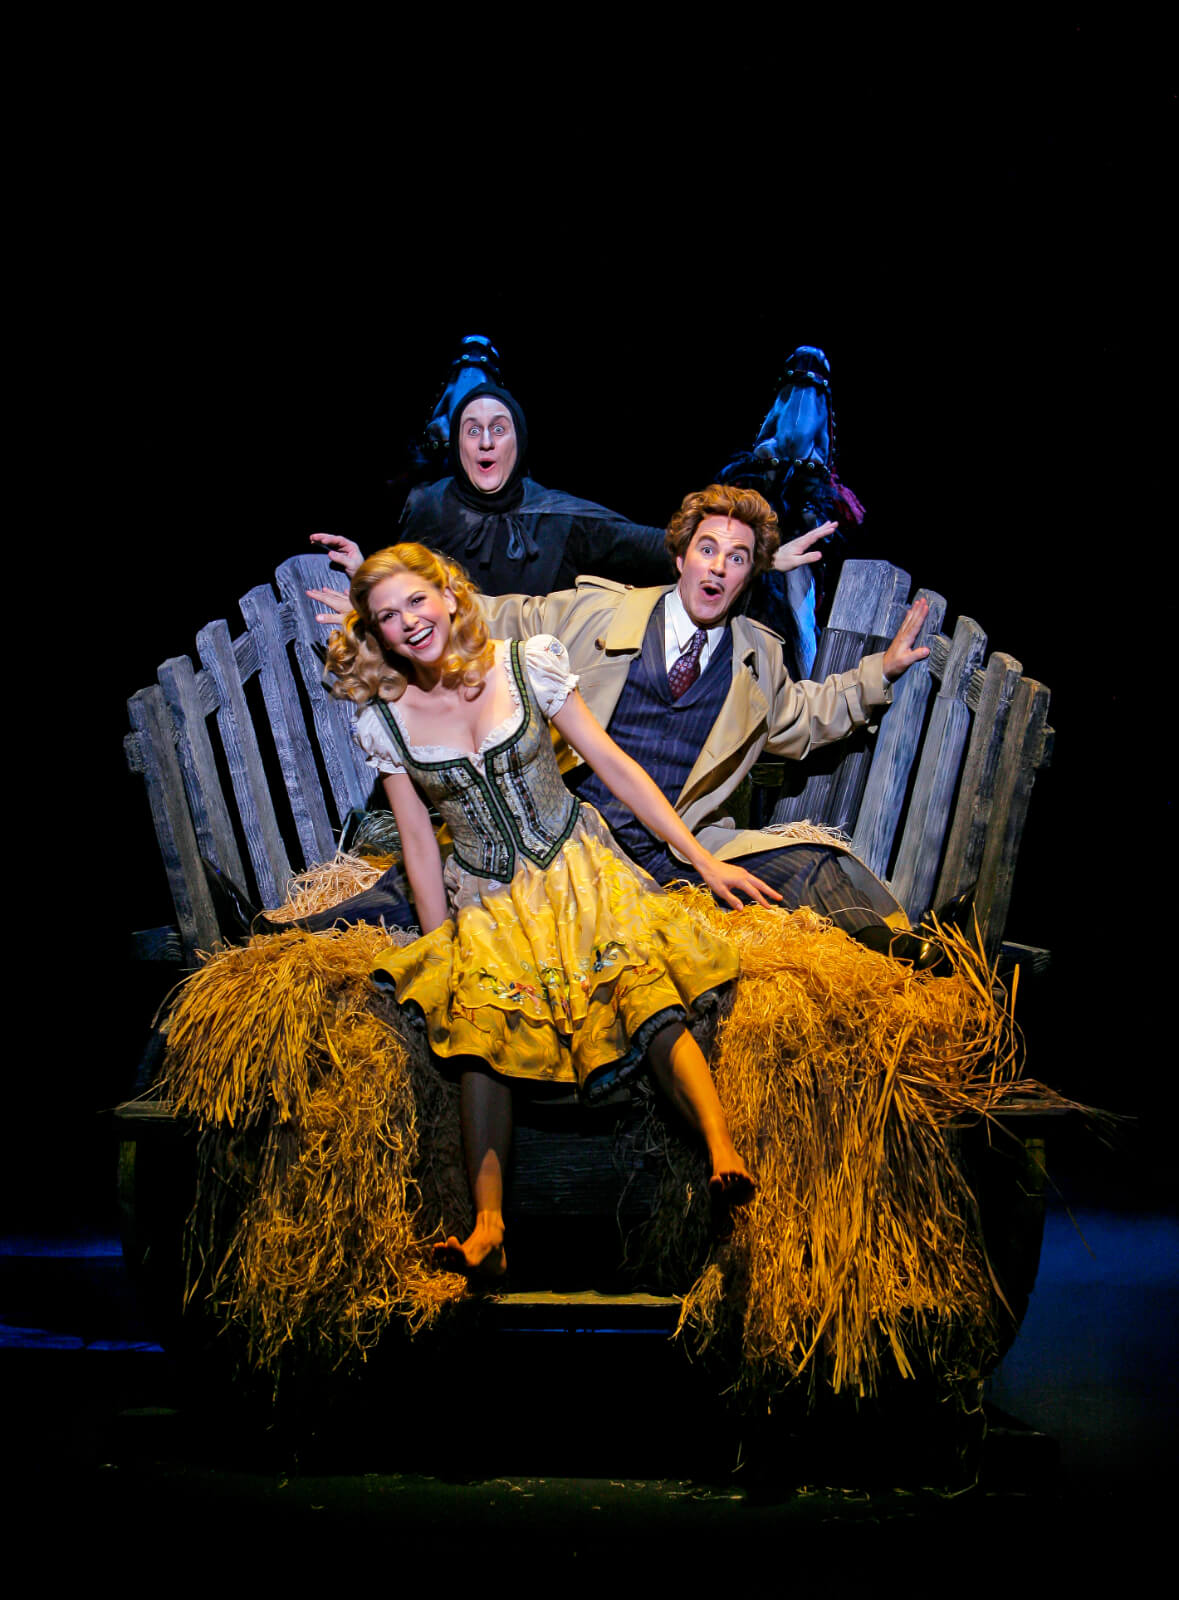 """Igor (Chris Fitzgerald), Dr. Frankenstein (Roger Bart) and Inga (Sutton Foster) singing """"Roll in the Hay"""". They are sitting a hay stack and rocking back and forth. Two horses rock up and down."""